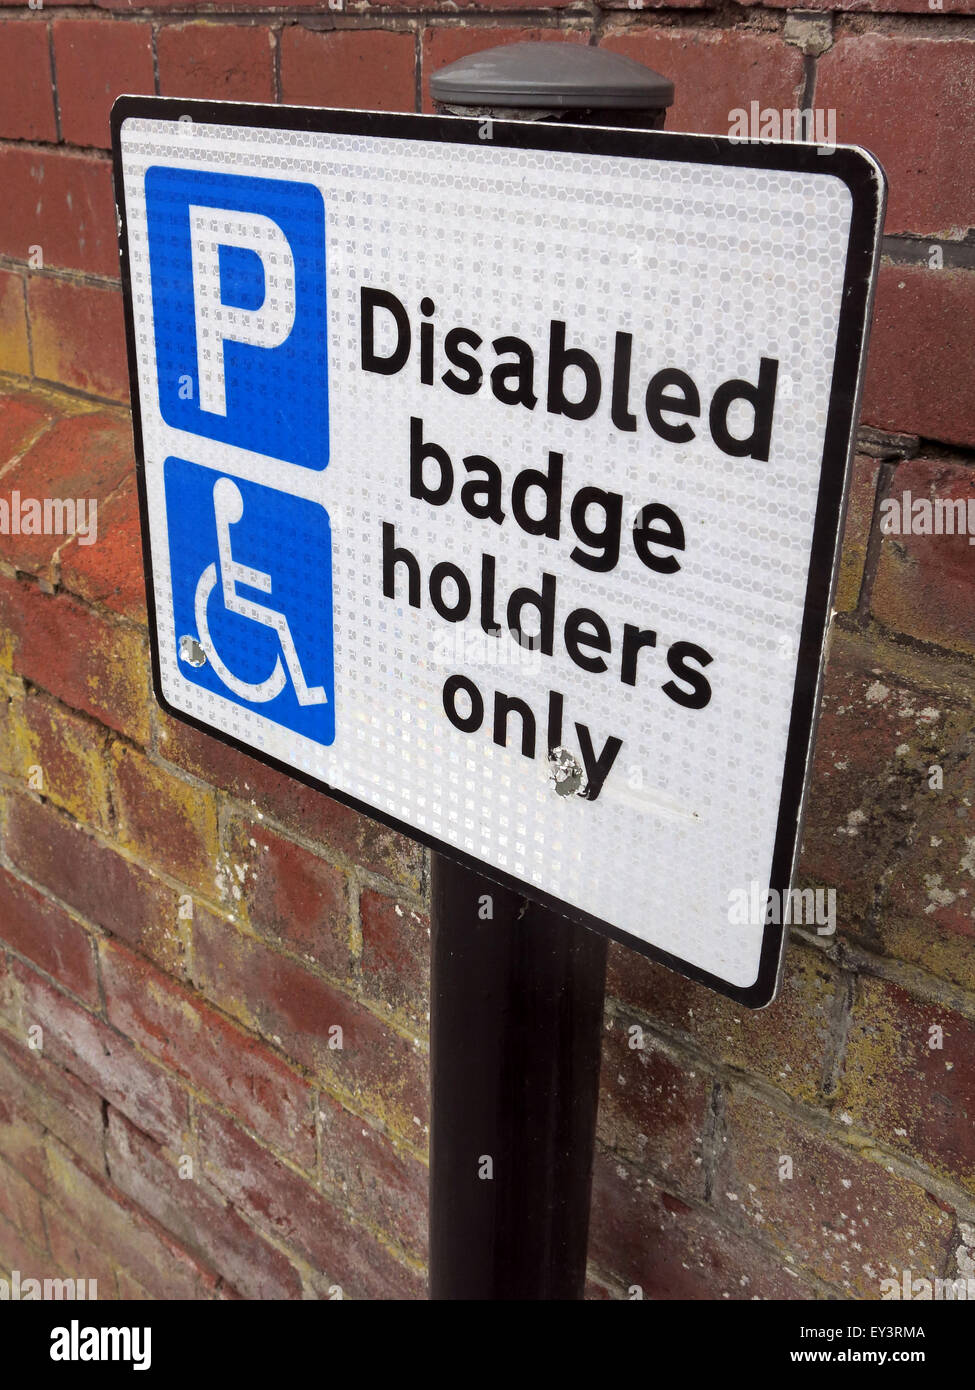 Wheelchair,misuse,England,English,GB,Great Britain,car park,parking,area,P,Disabled Badge,holders Only,sign,plate,GoTonySmith,Buy Pictures of,Buy Images Of